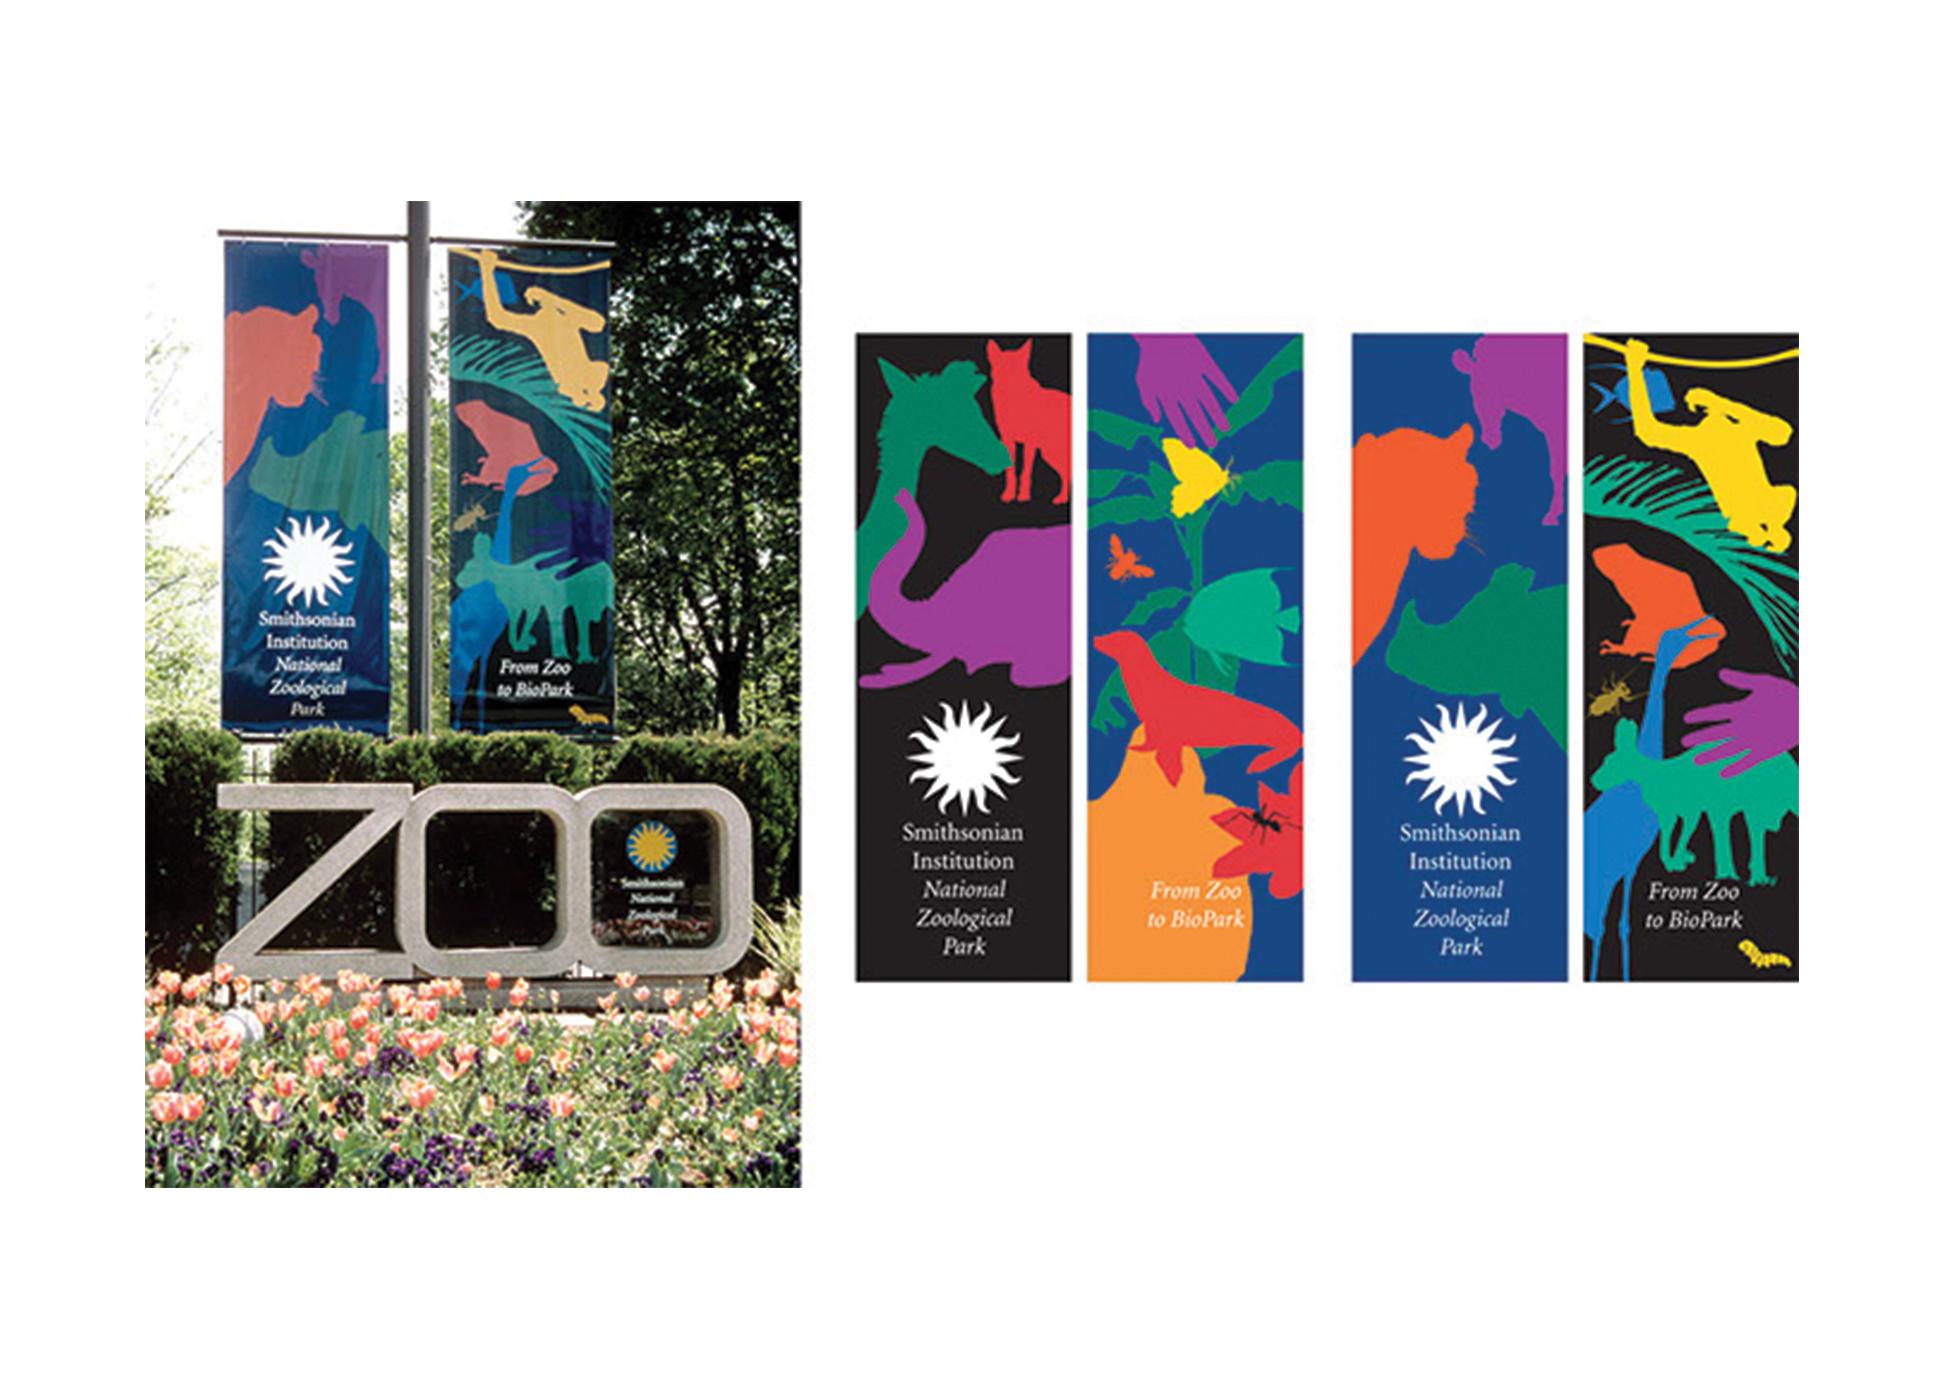 Banners for the Smithsonian Institution National Zoological Park, Washington, DC.